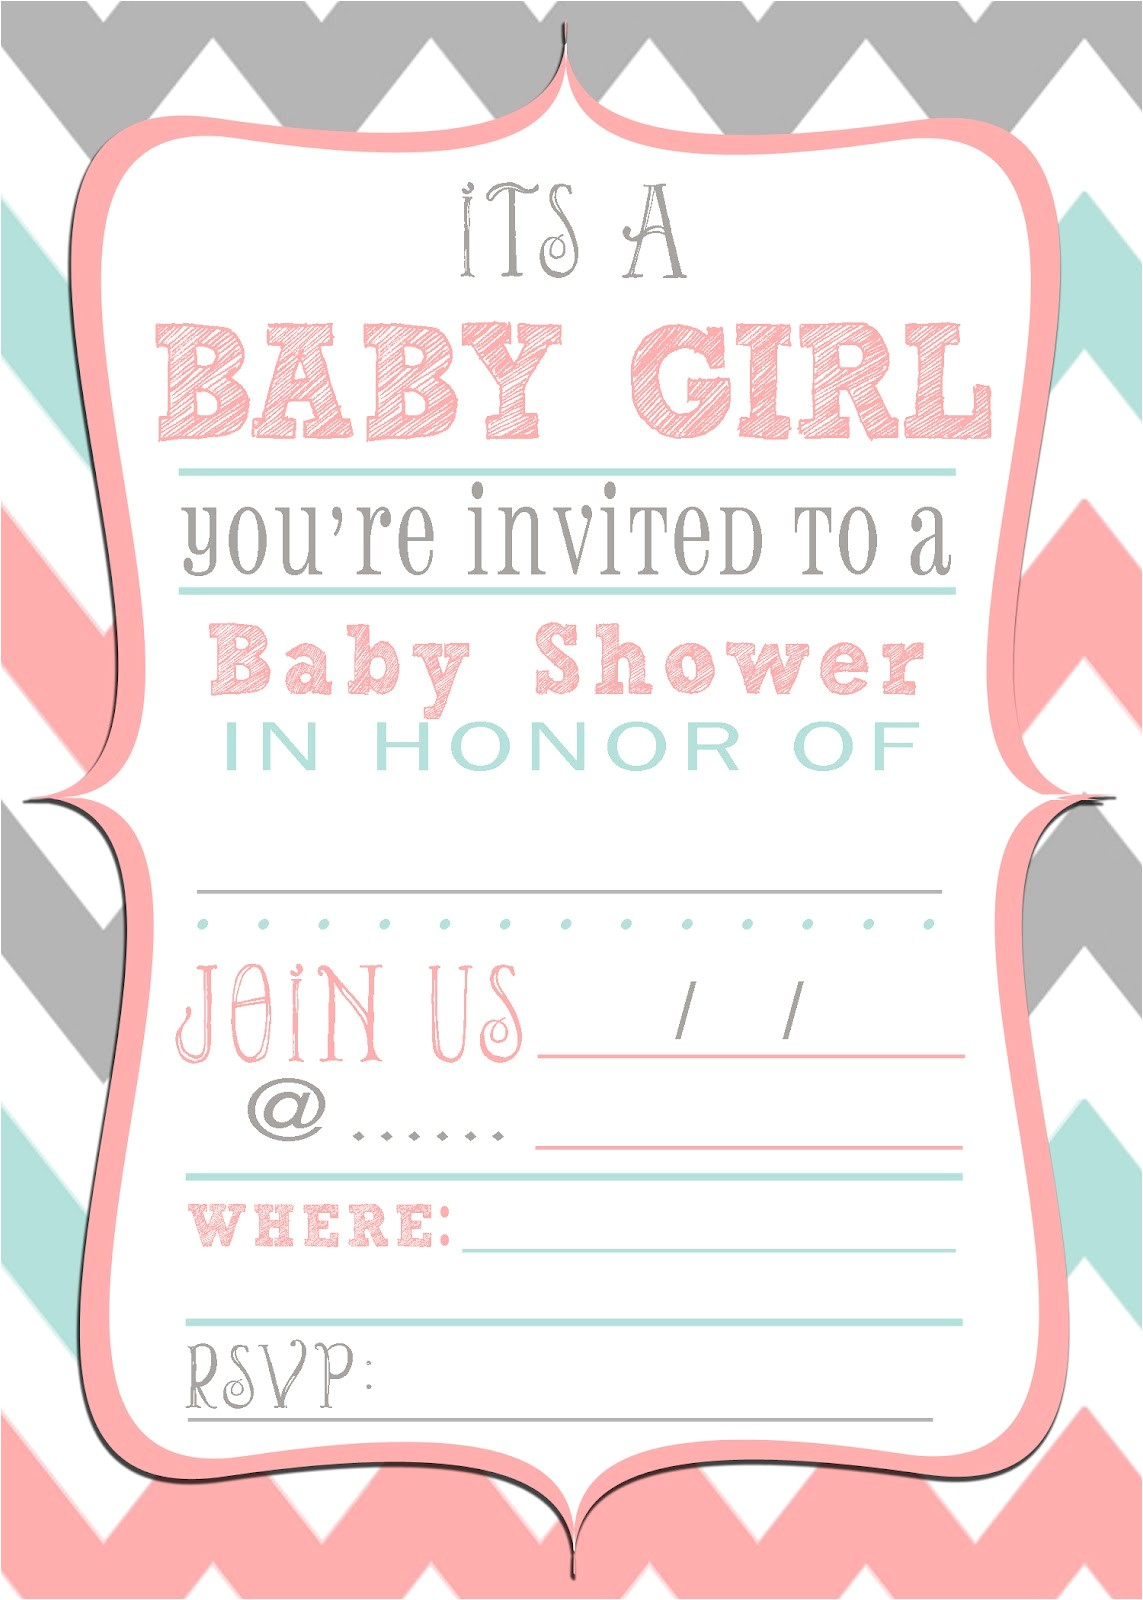 Free Customizable Printable Baby Shower Invitations Mrs This and that Baby Shower Banner Free Downloads